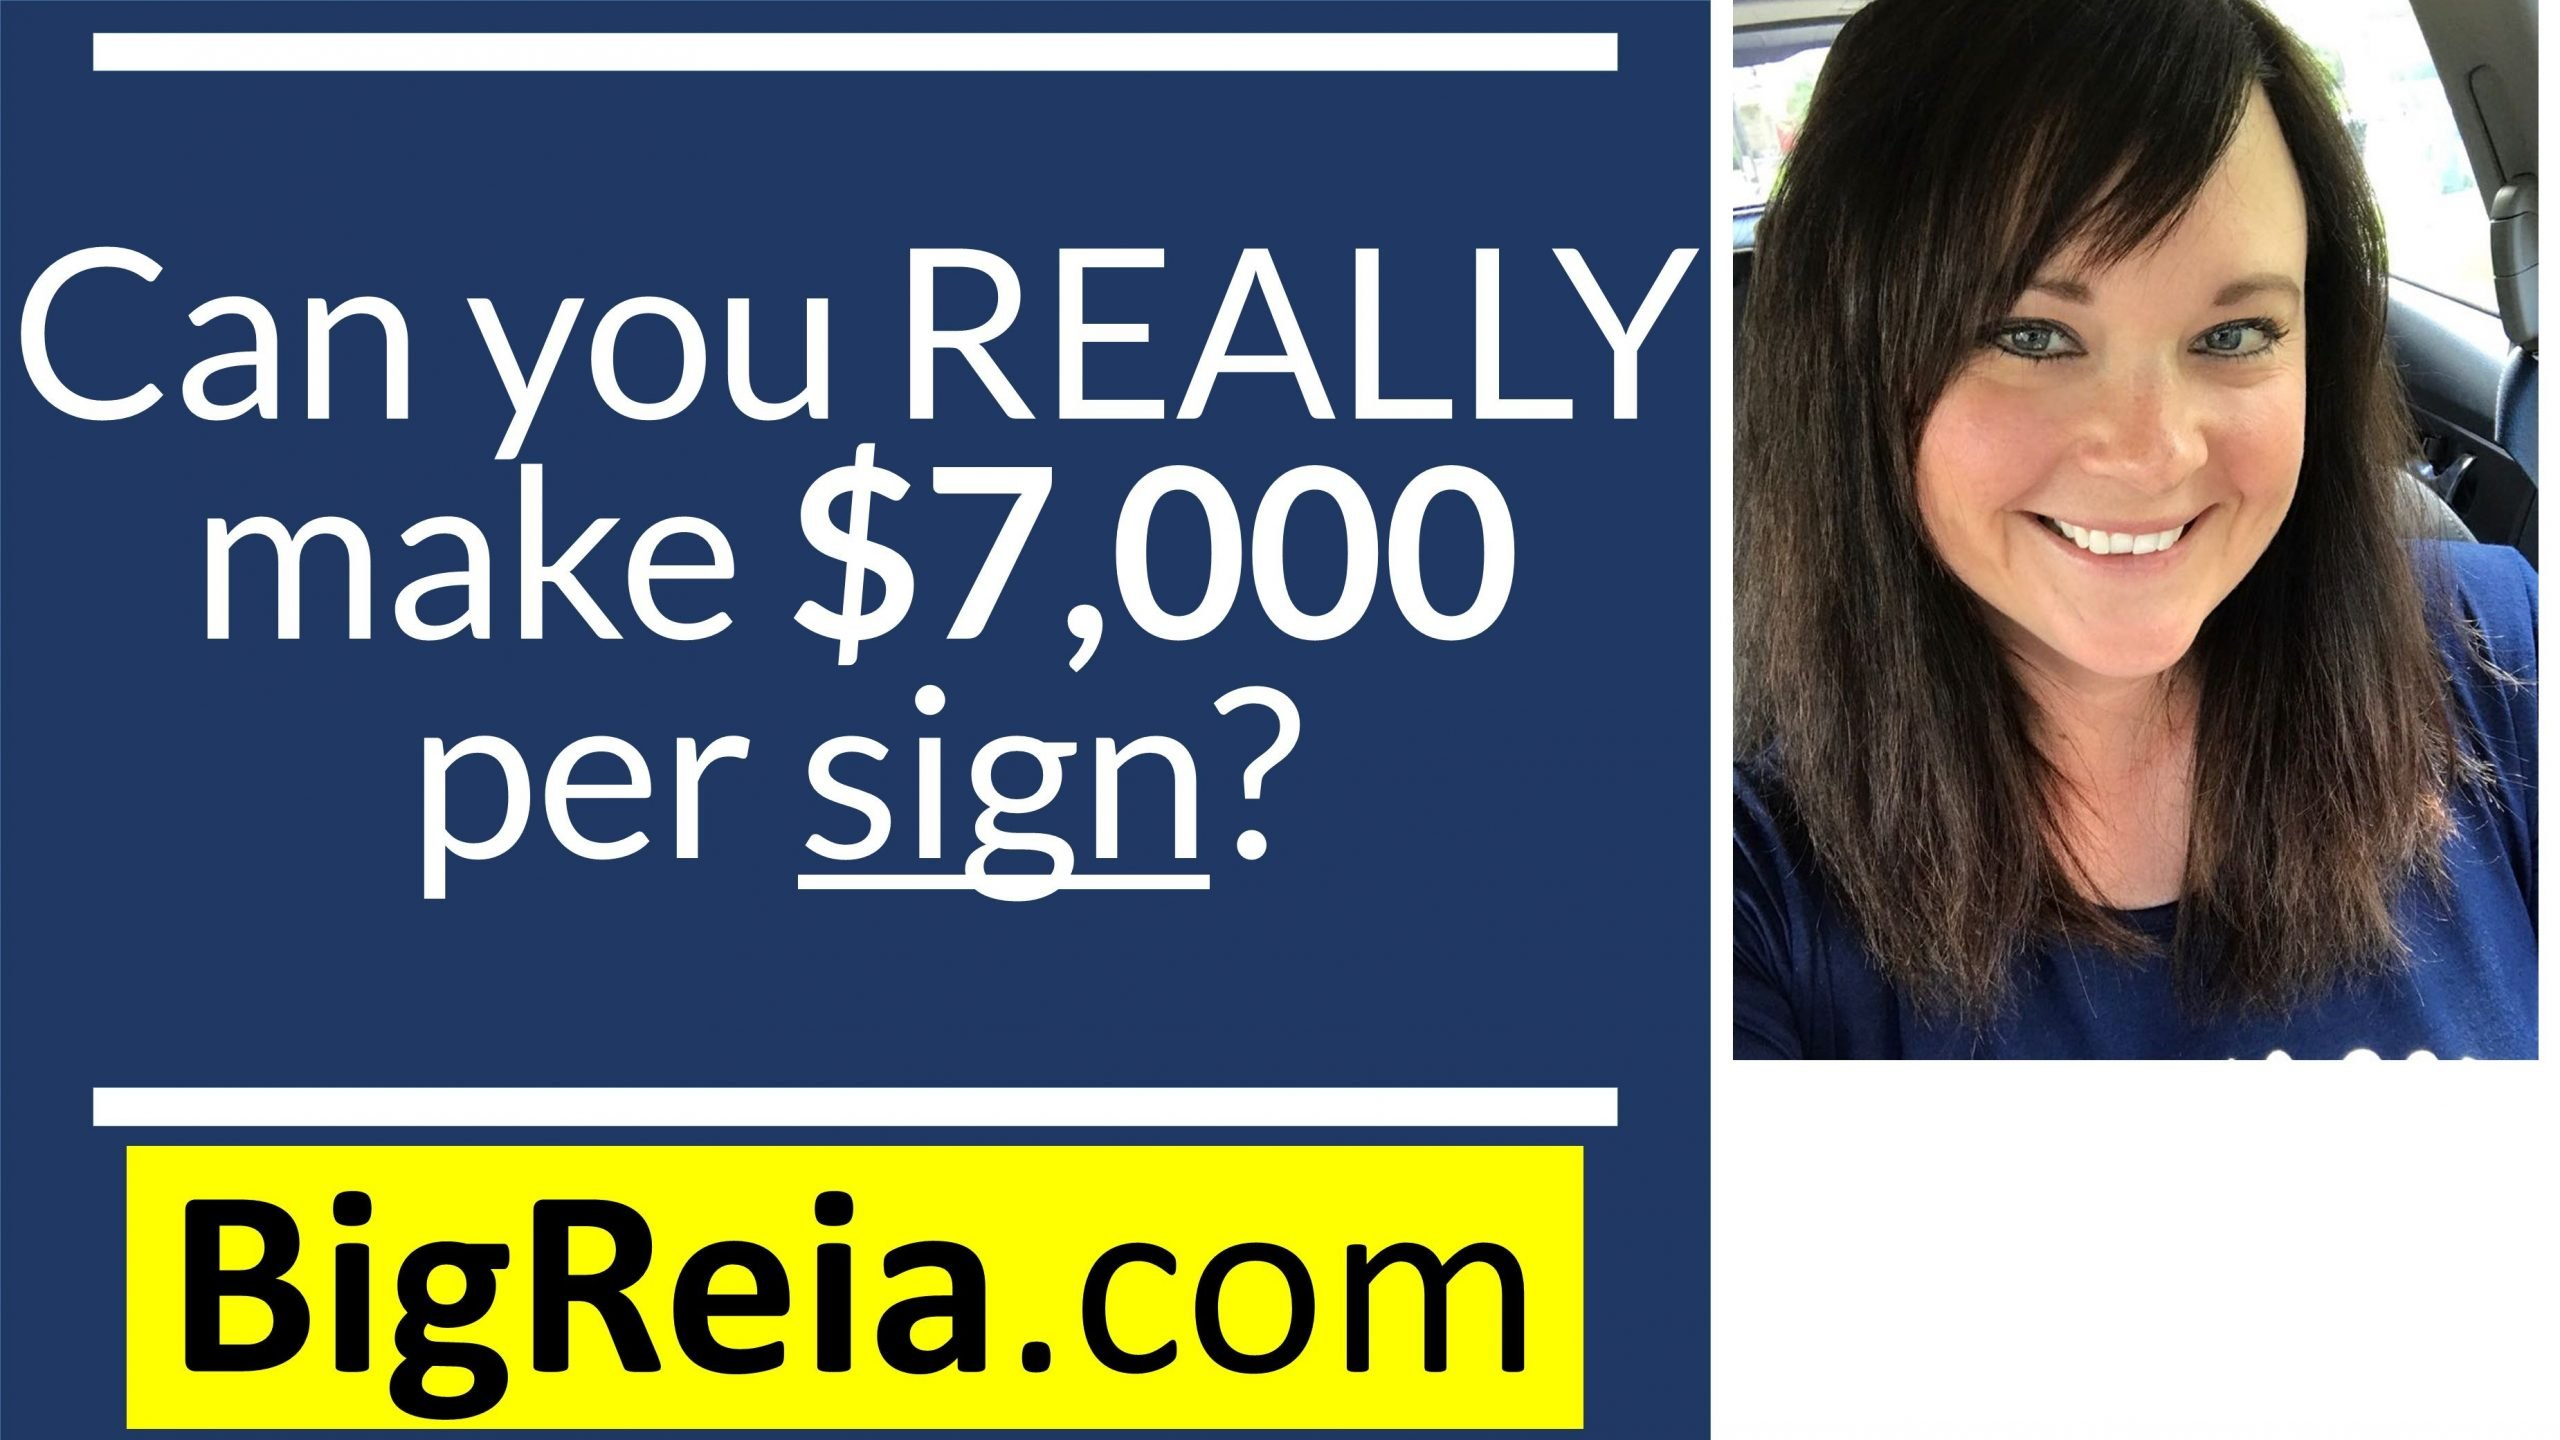 Can a real estate investor REALLY make over $7,000 per sign?